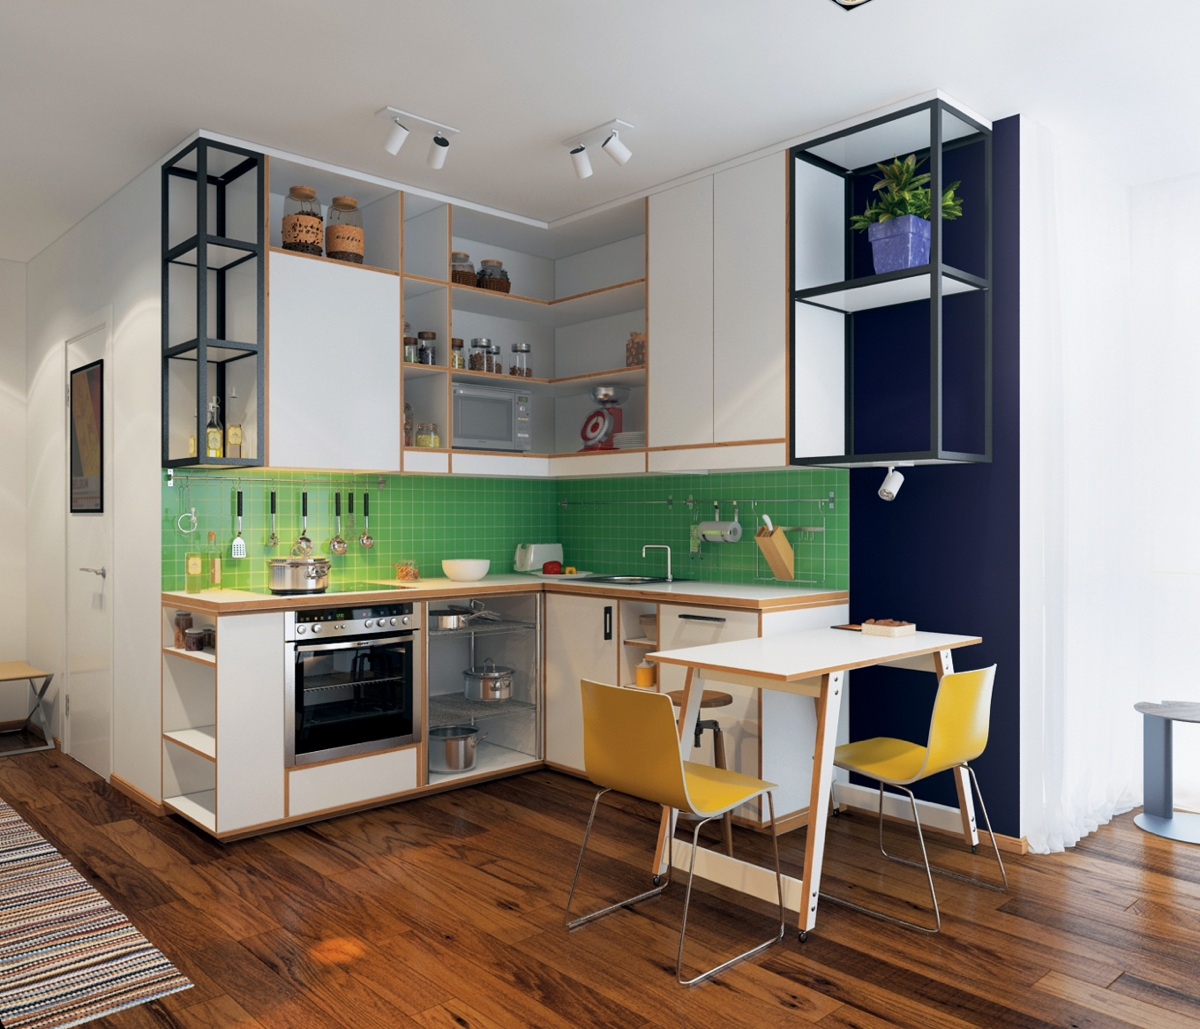 Delightful Home Design 400 Square Feet Part - 8: Homes Under 400 Square Feet: 5 Apartments That Squeeze Utility Out Of Every  Square Inch